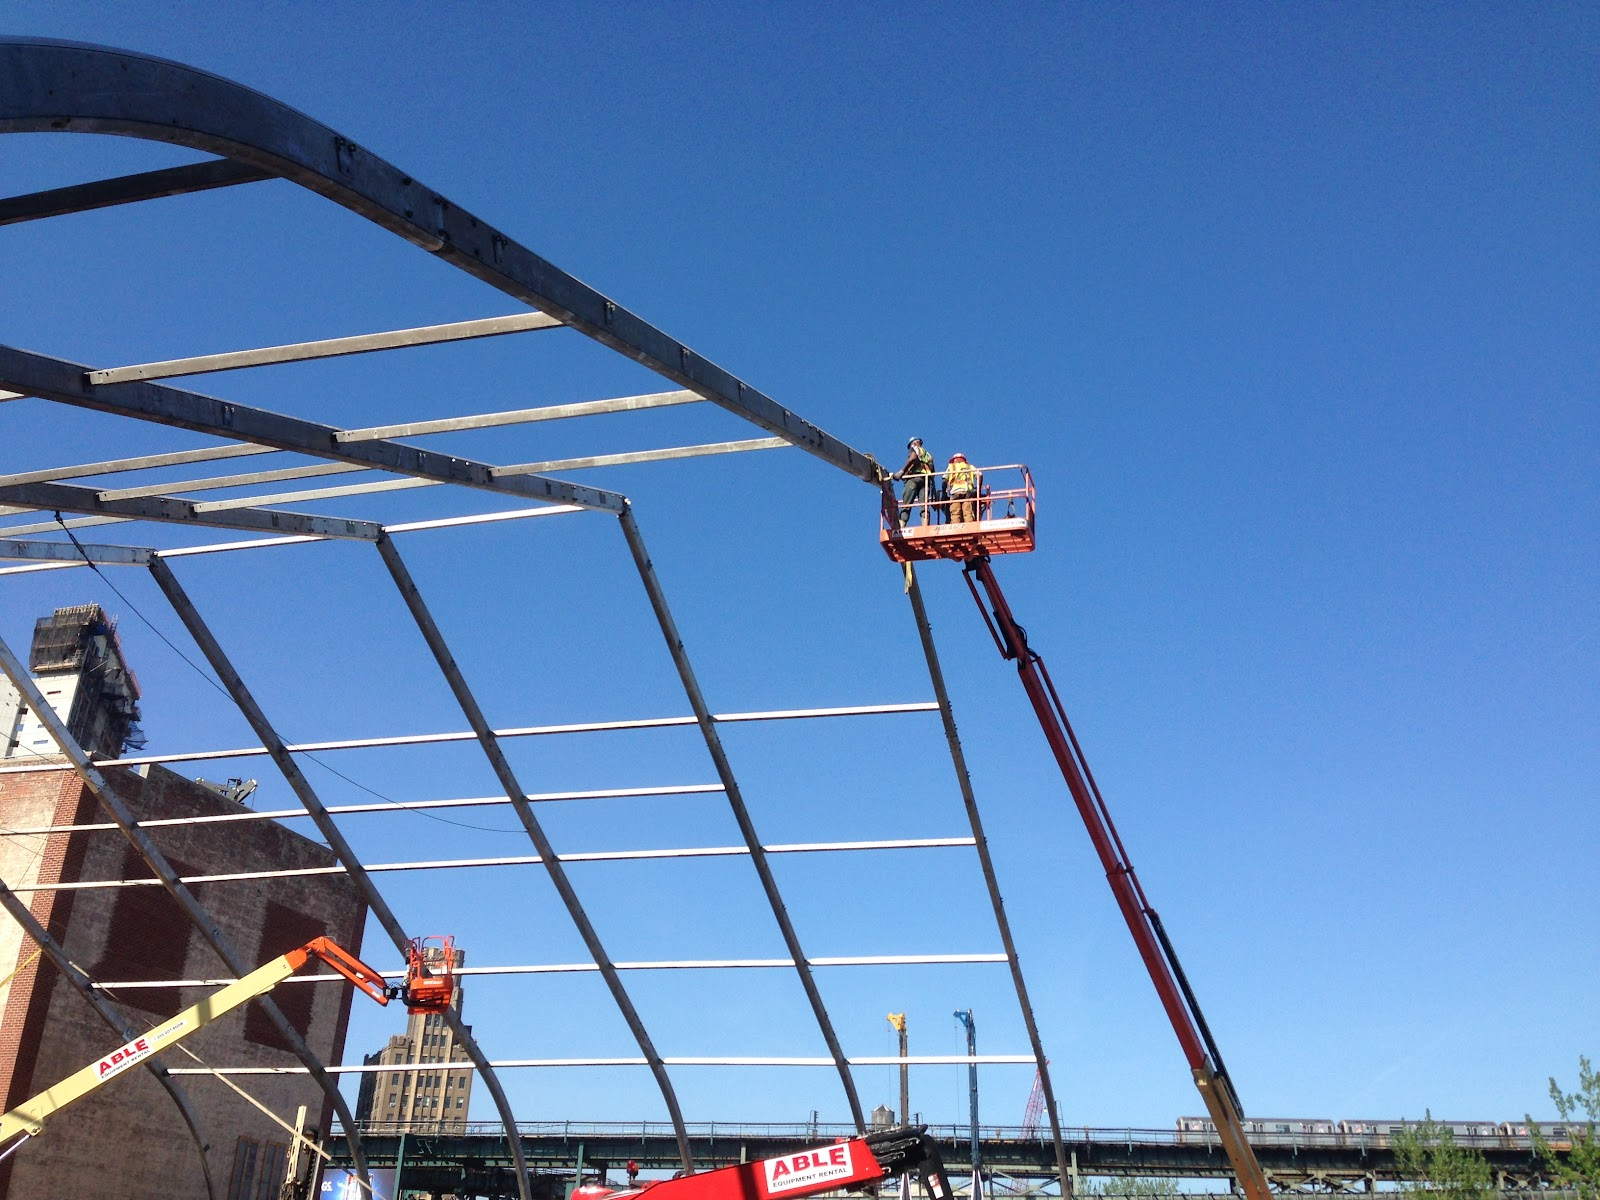 Aluminum frame being installed for high clearance tension fabric building modular construction